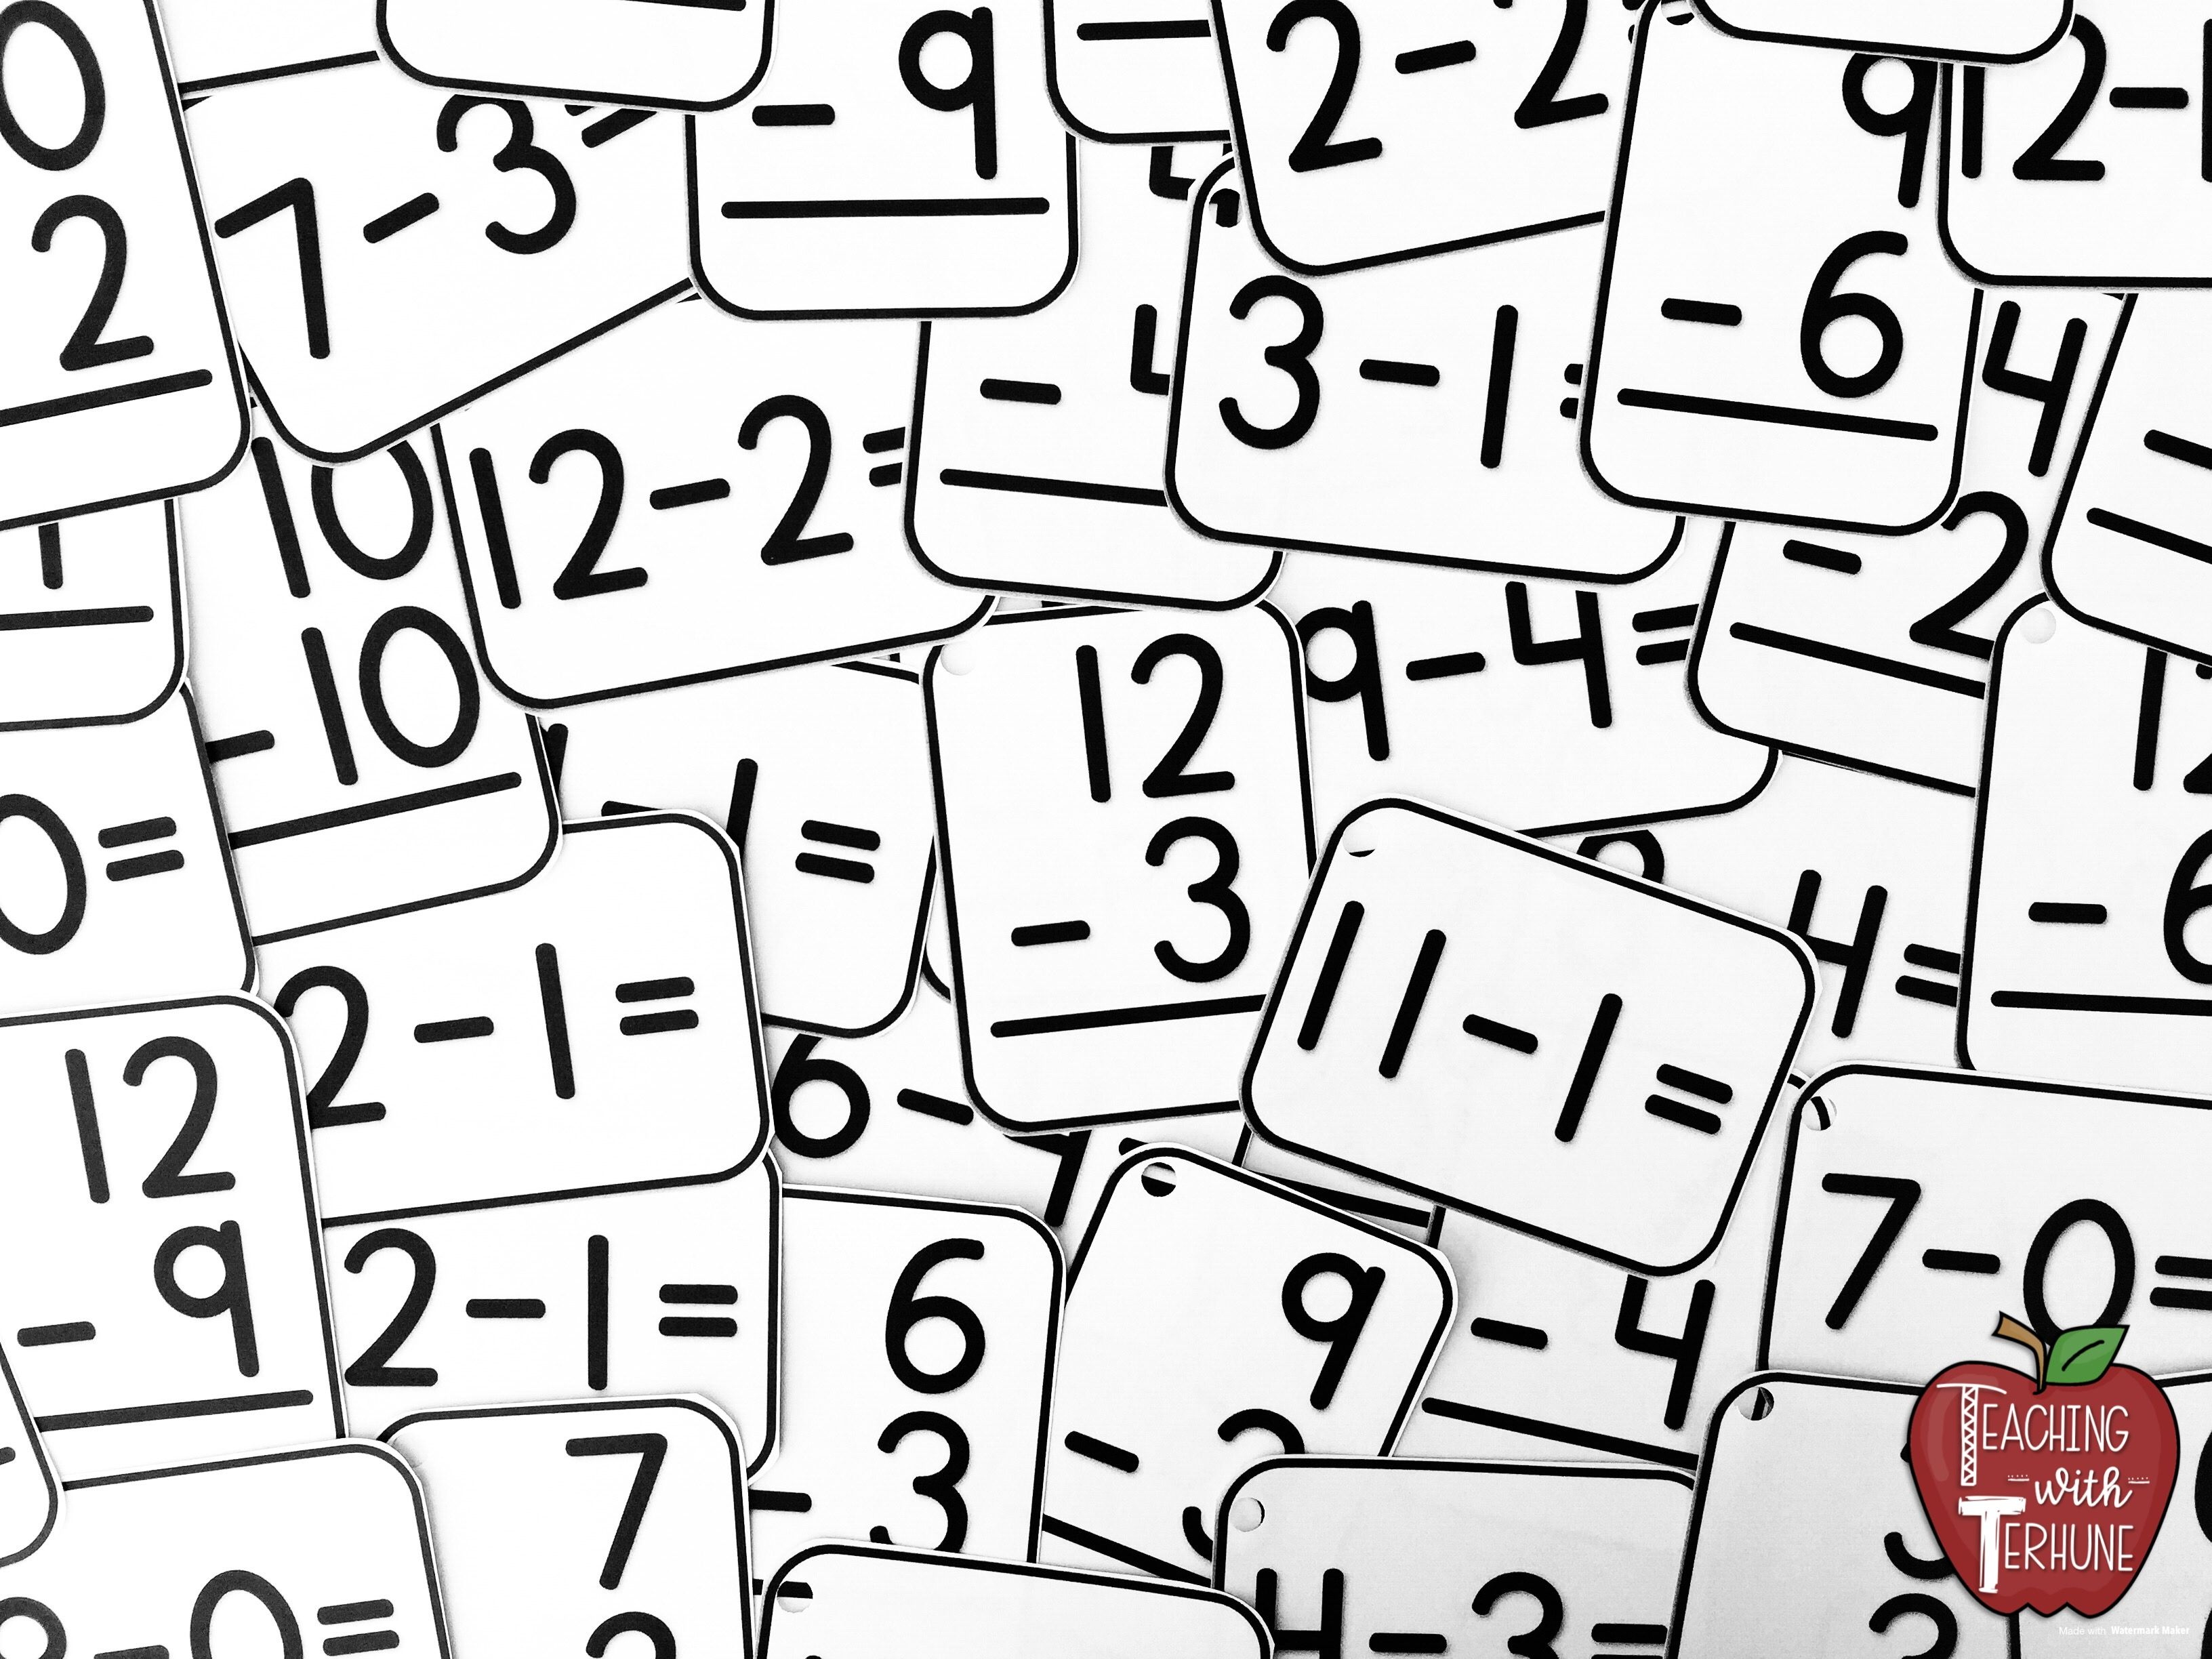 Subtraction Flash Cards Printable Flashcards With Answers